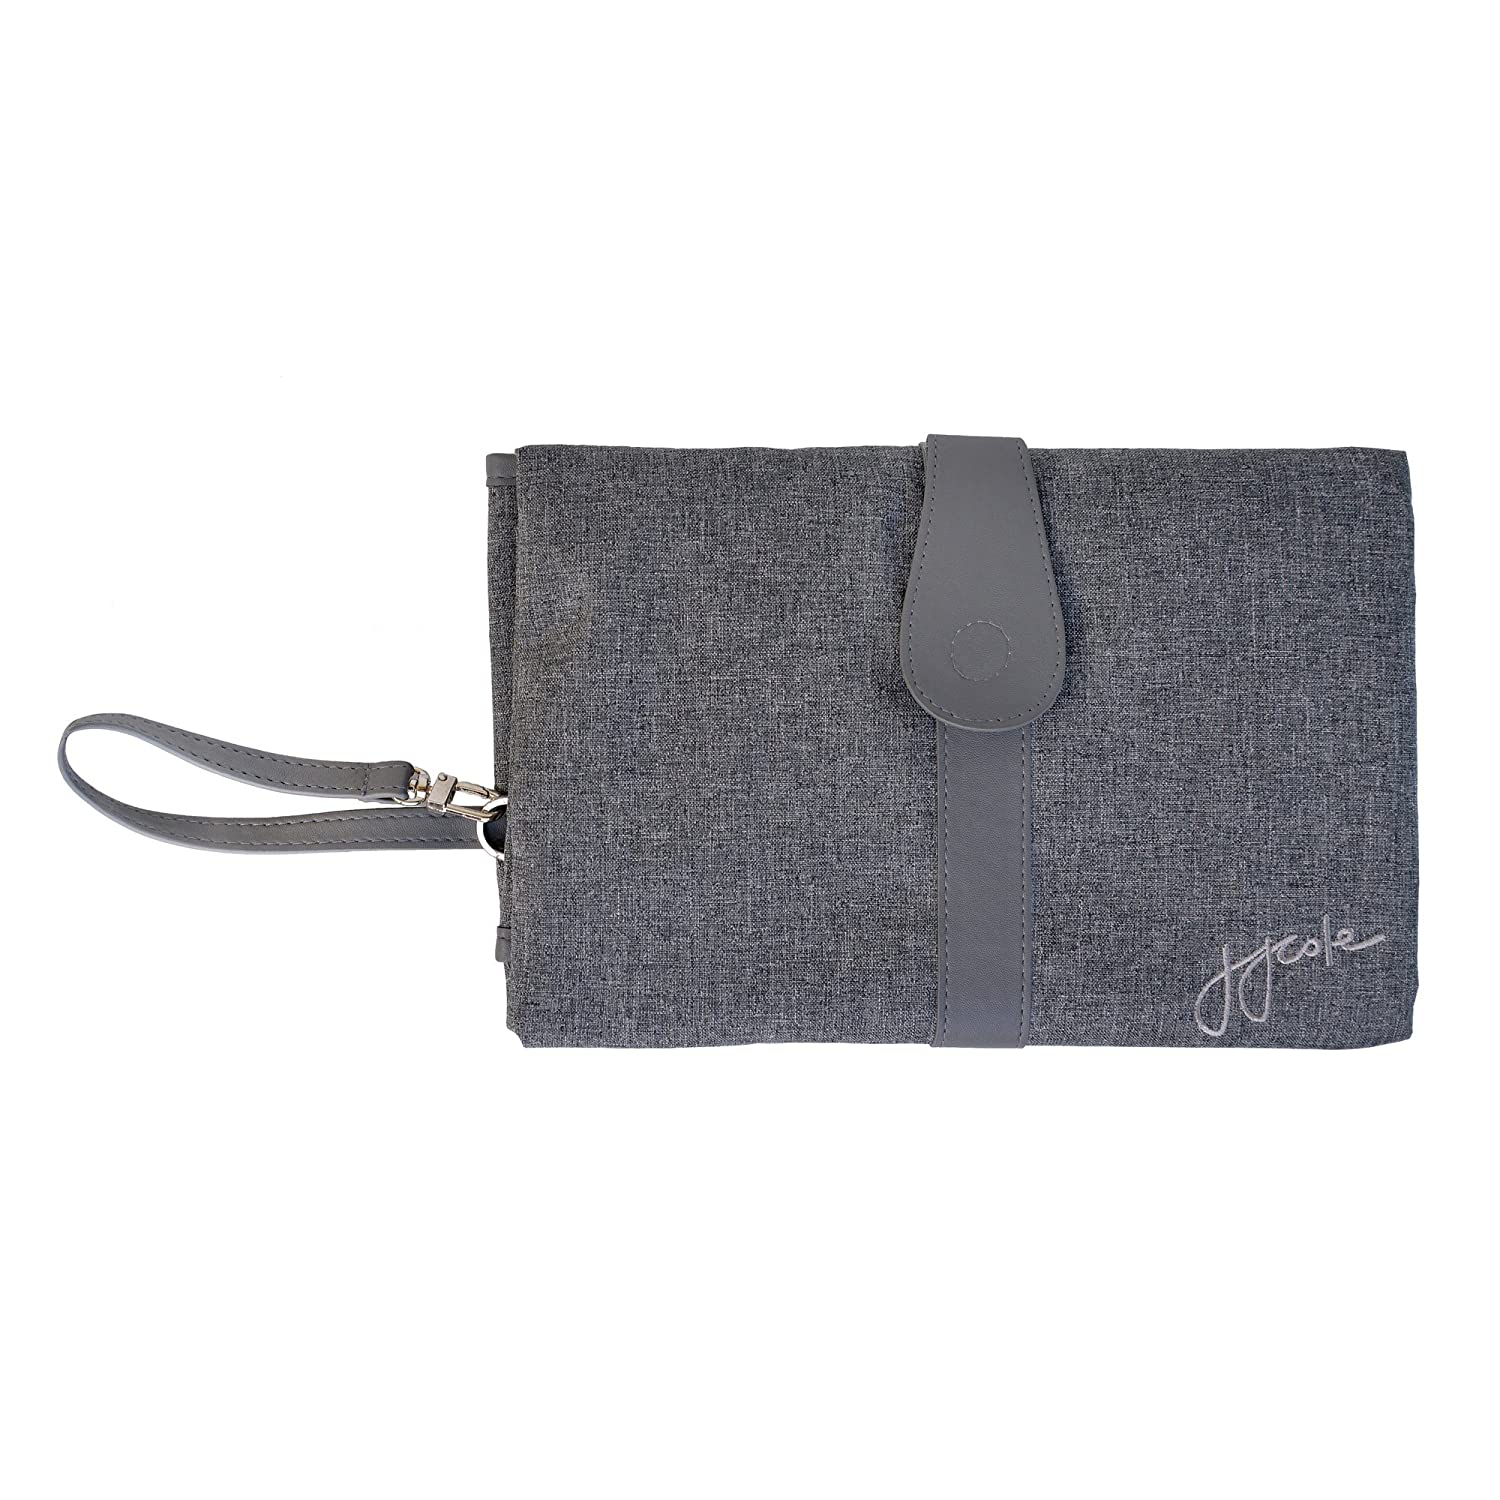 JJ Cole Portable Diaper Changing Clutch with Wipeable Diaper Changing Pad, Gray Heather